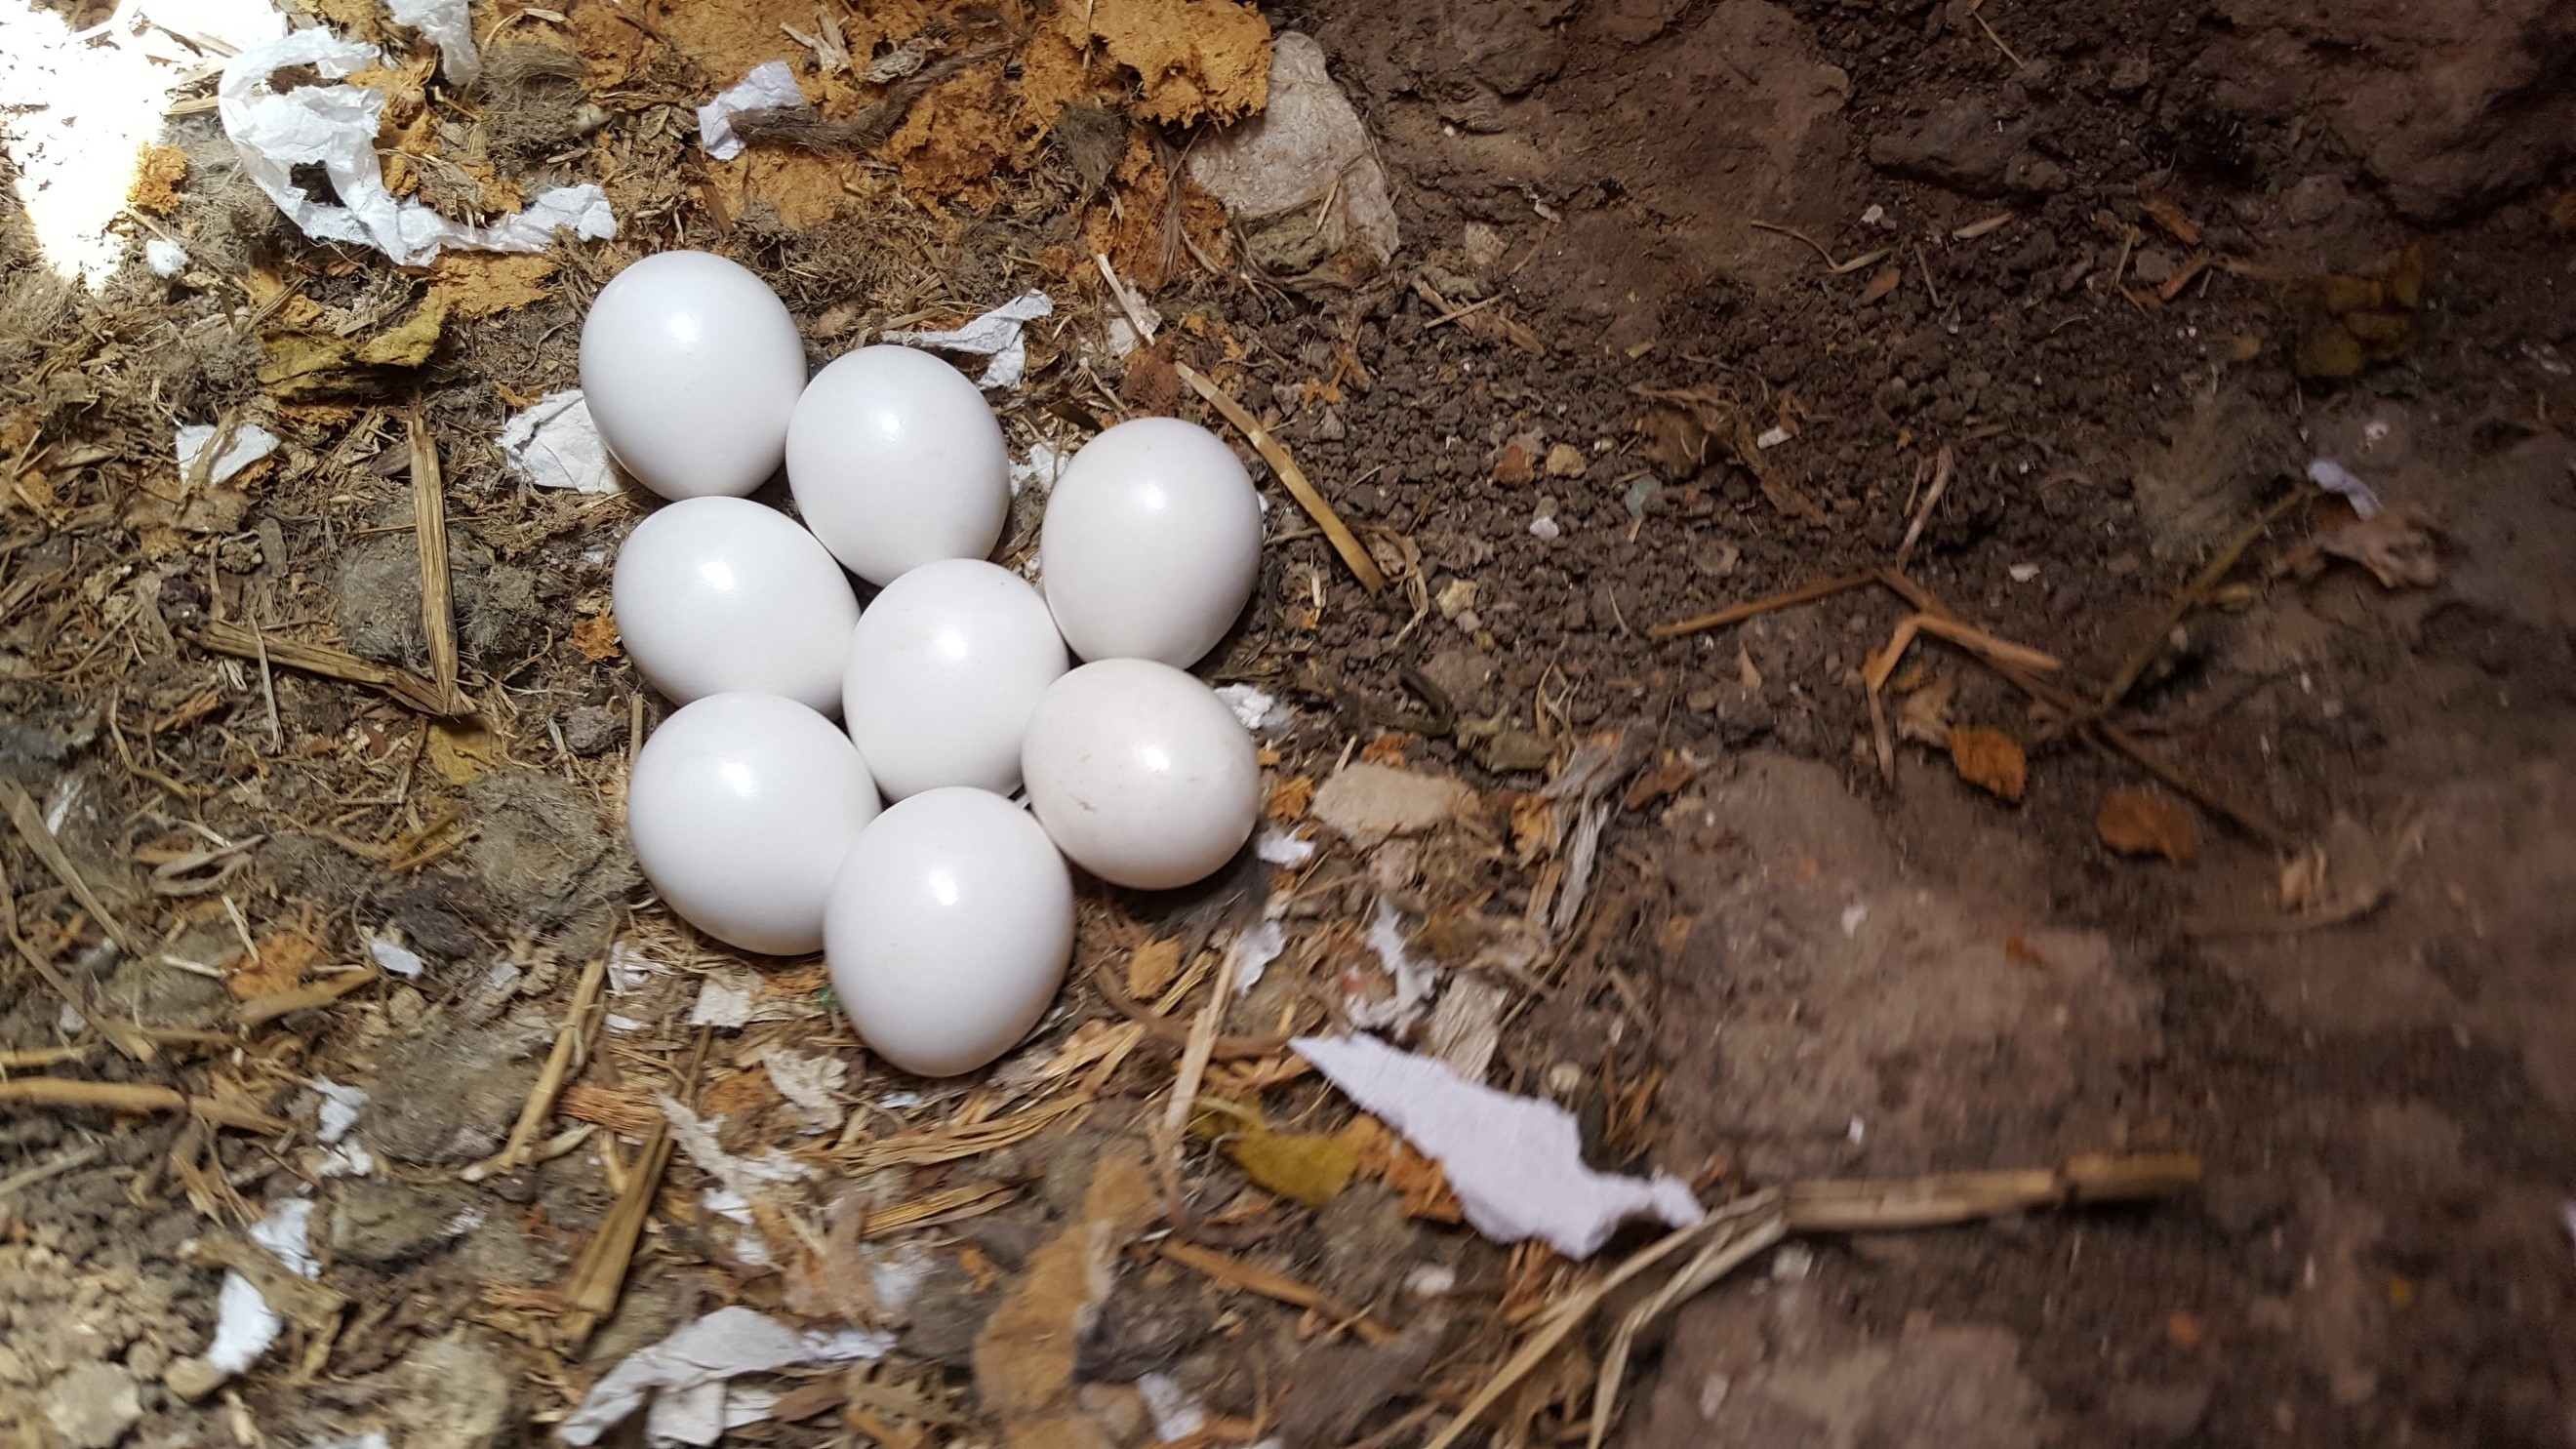 Figure 1. Eight carefully tended burrowing owl eggs in a burrow.